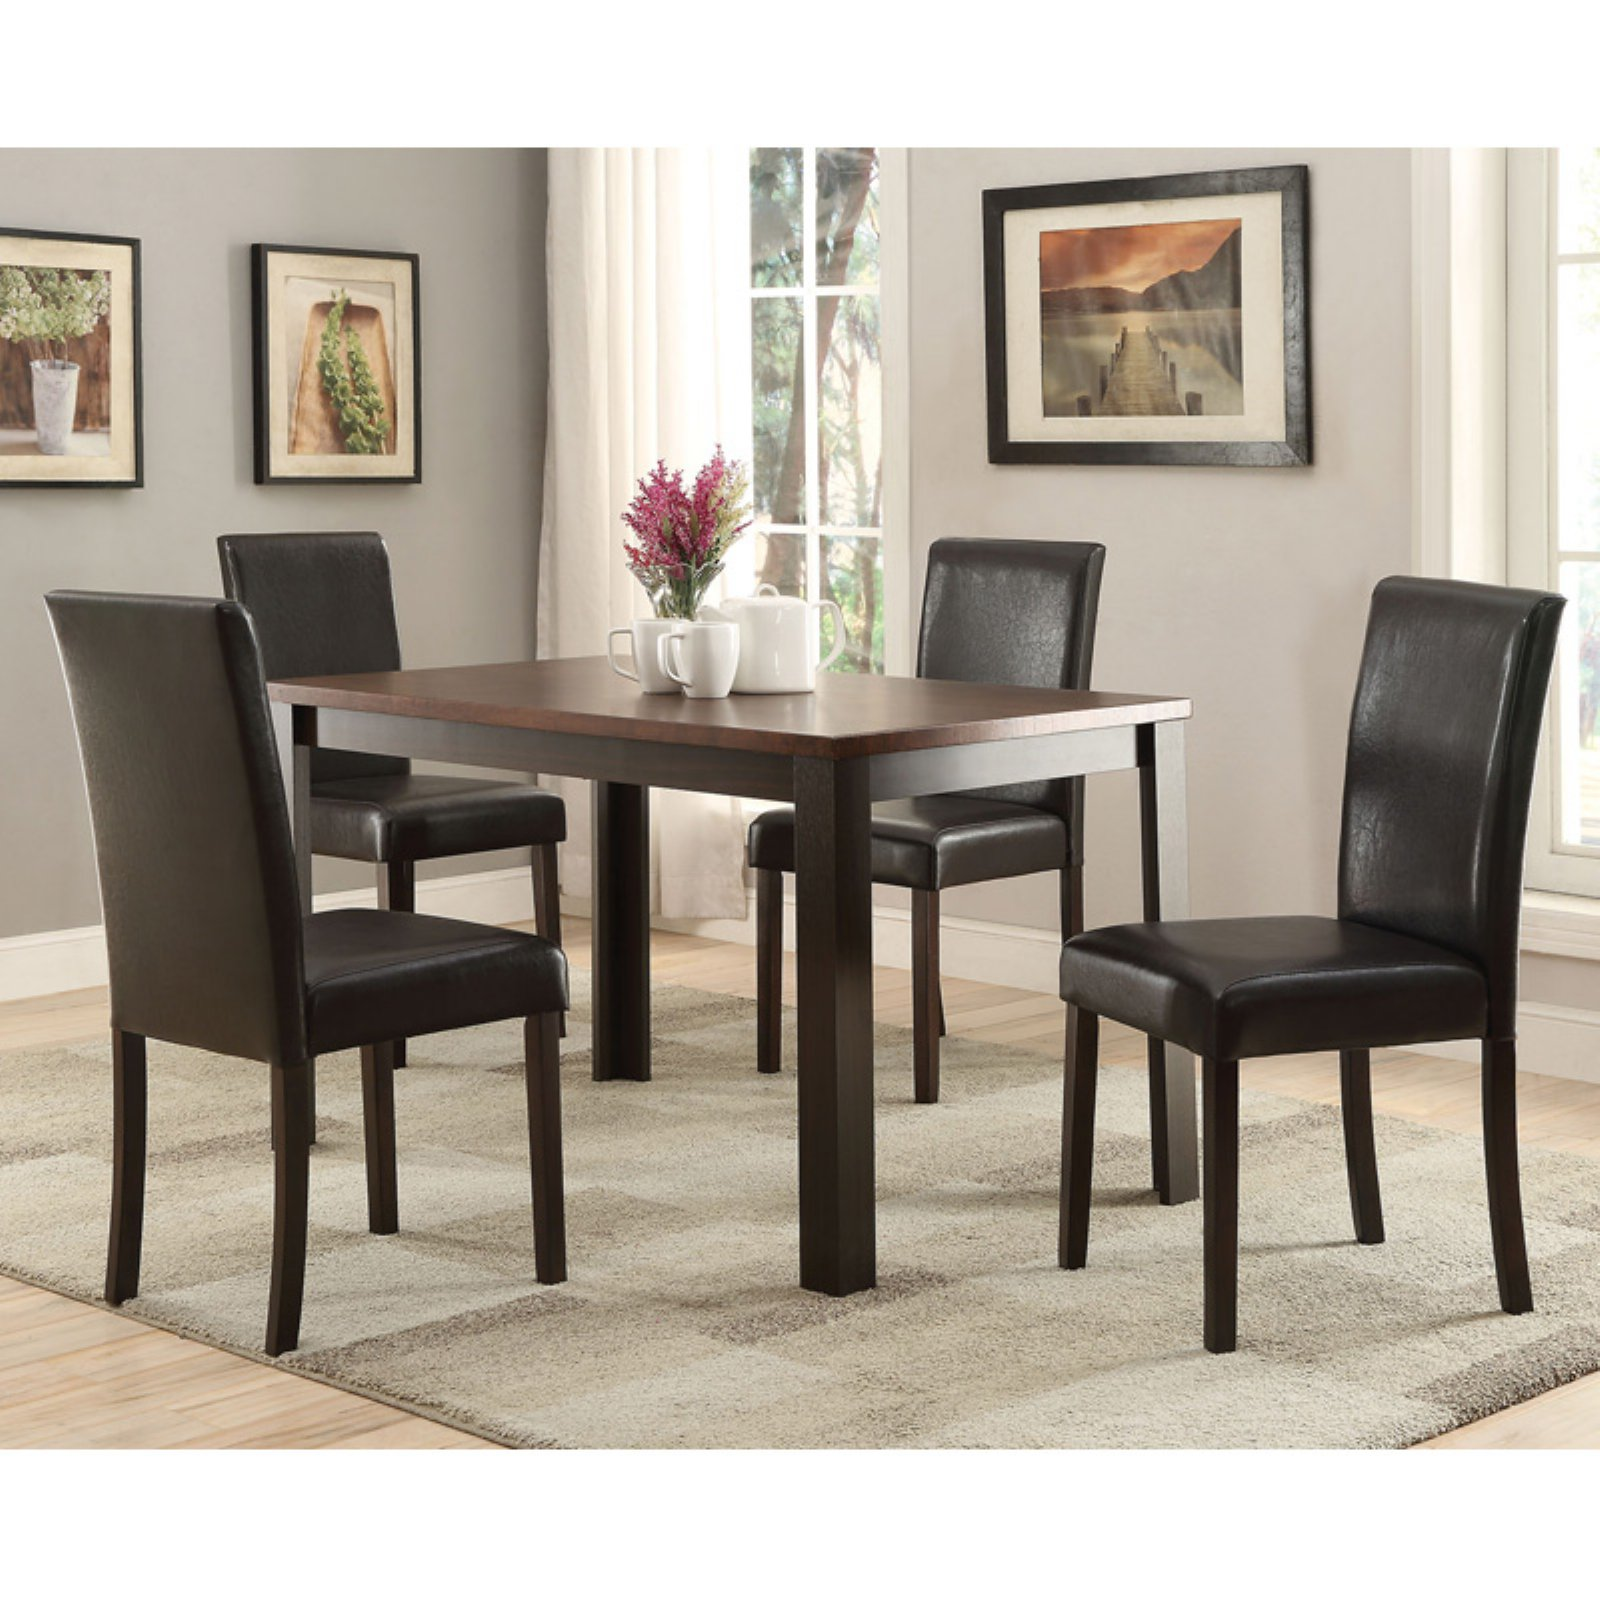 Acme Furniture Kylan 5 Piece Rectangular Dining Table Set